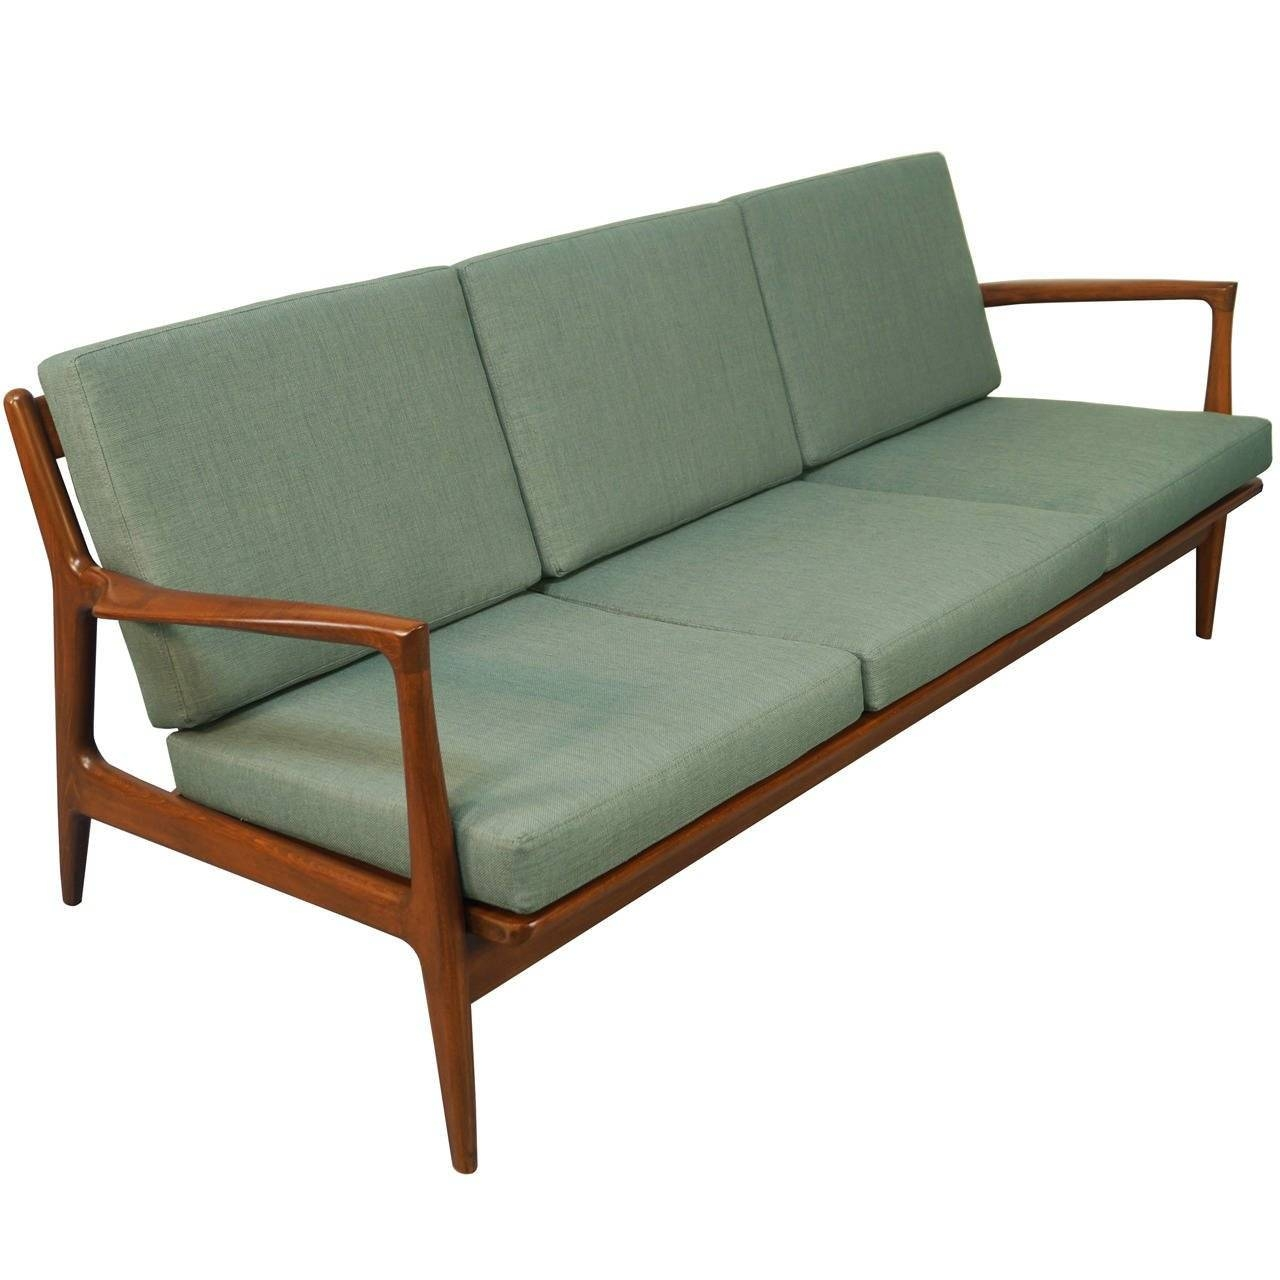 Danish Modern Sofaib Kofod-Larsen At 1Stdibs in Modern Danish Sofas (Image 2 of 15)